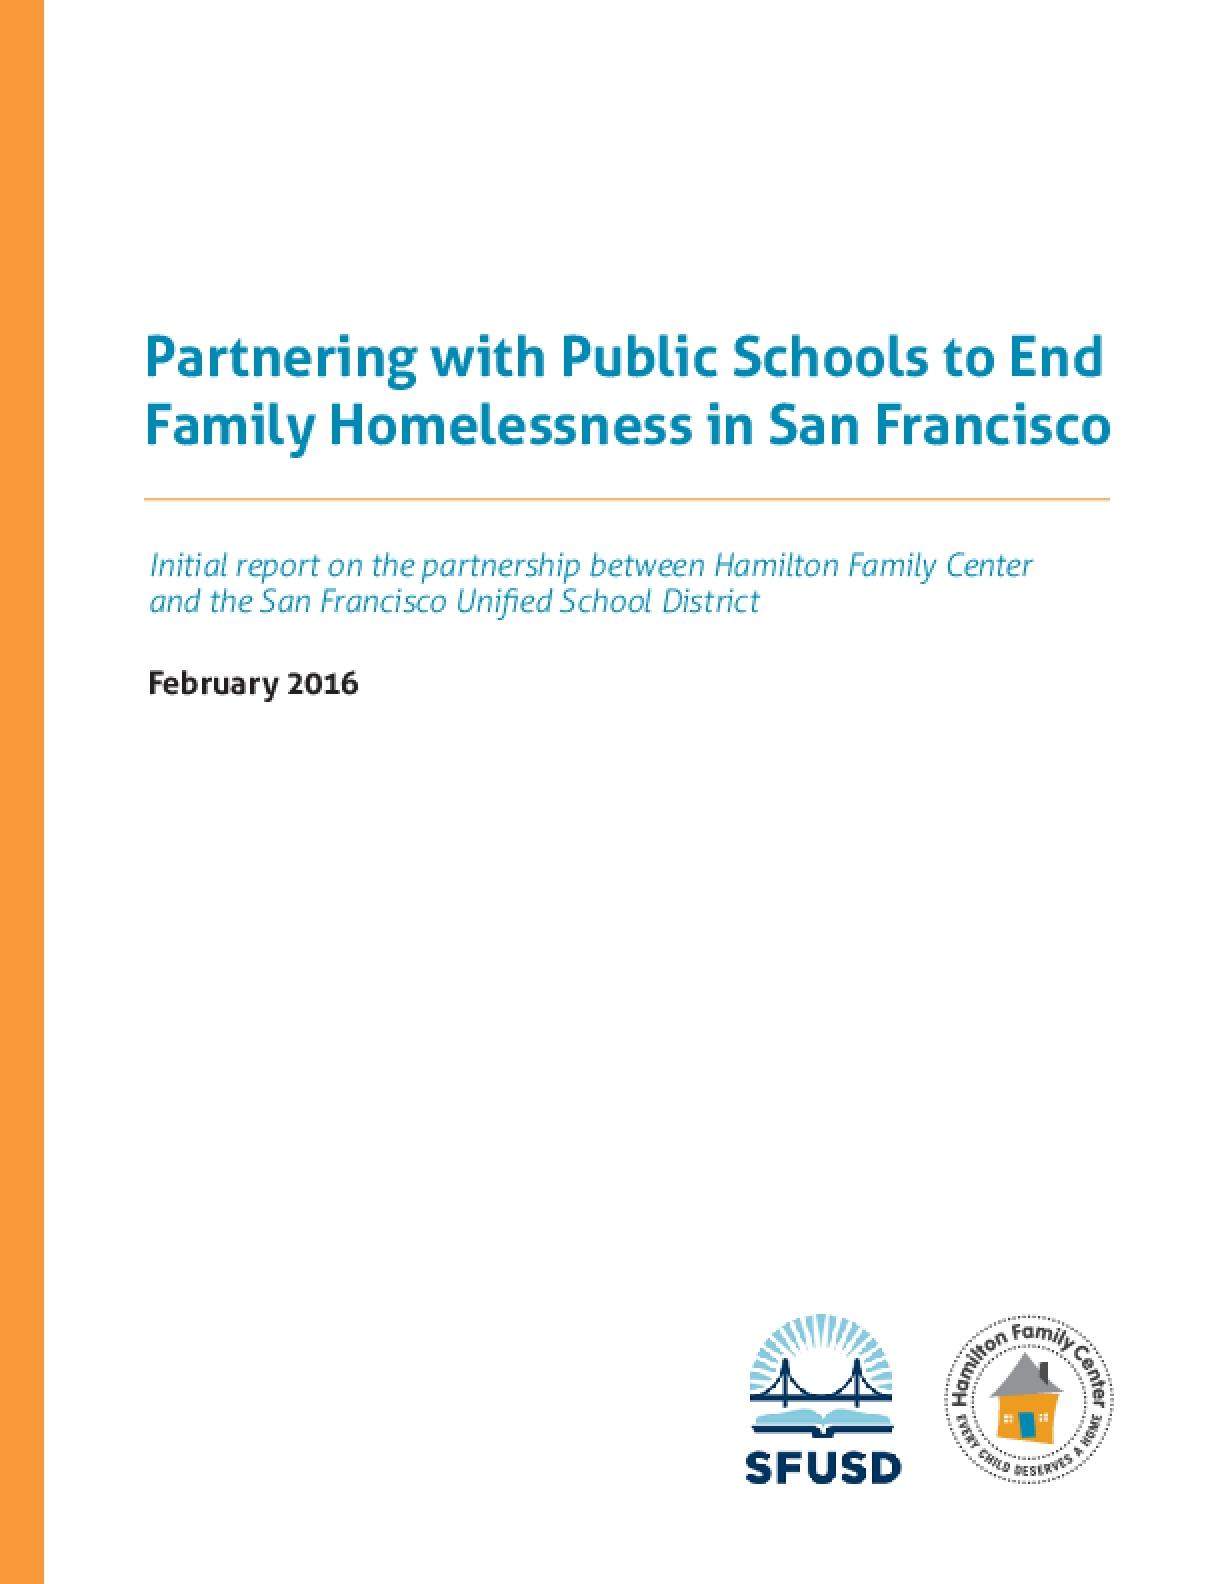 Partnering with Public Schools to End  Family Homelessness in San Francisco